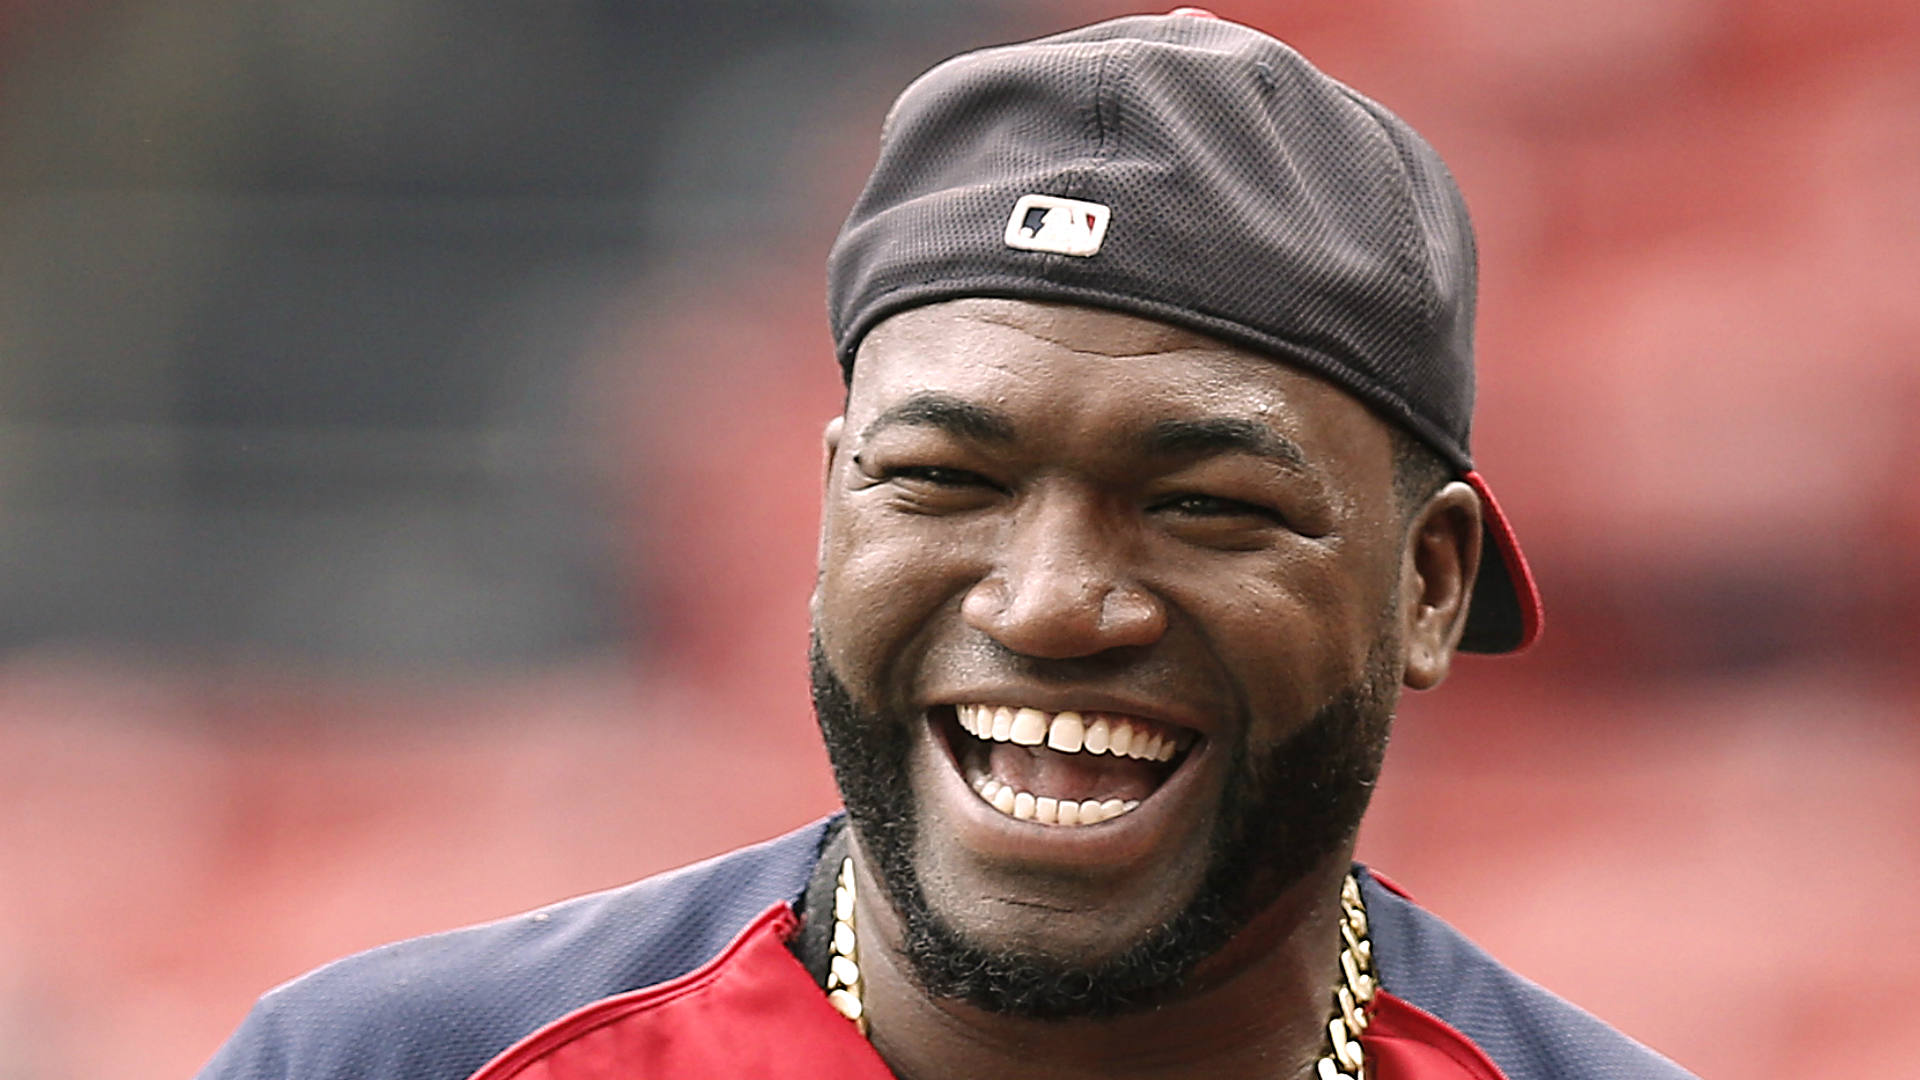 The legacy of David Ortiz shows how little PED use matters now  MLB  Sporting News